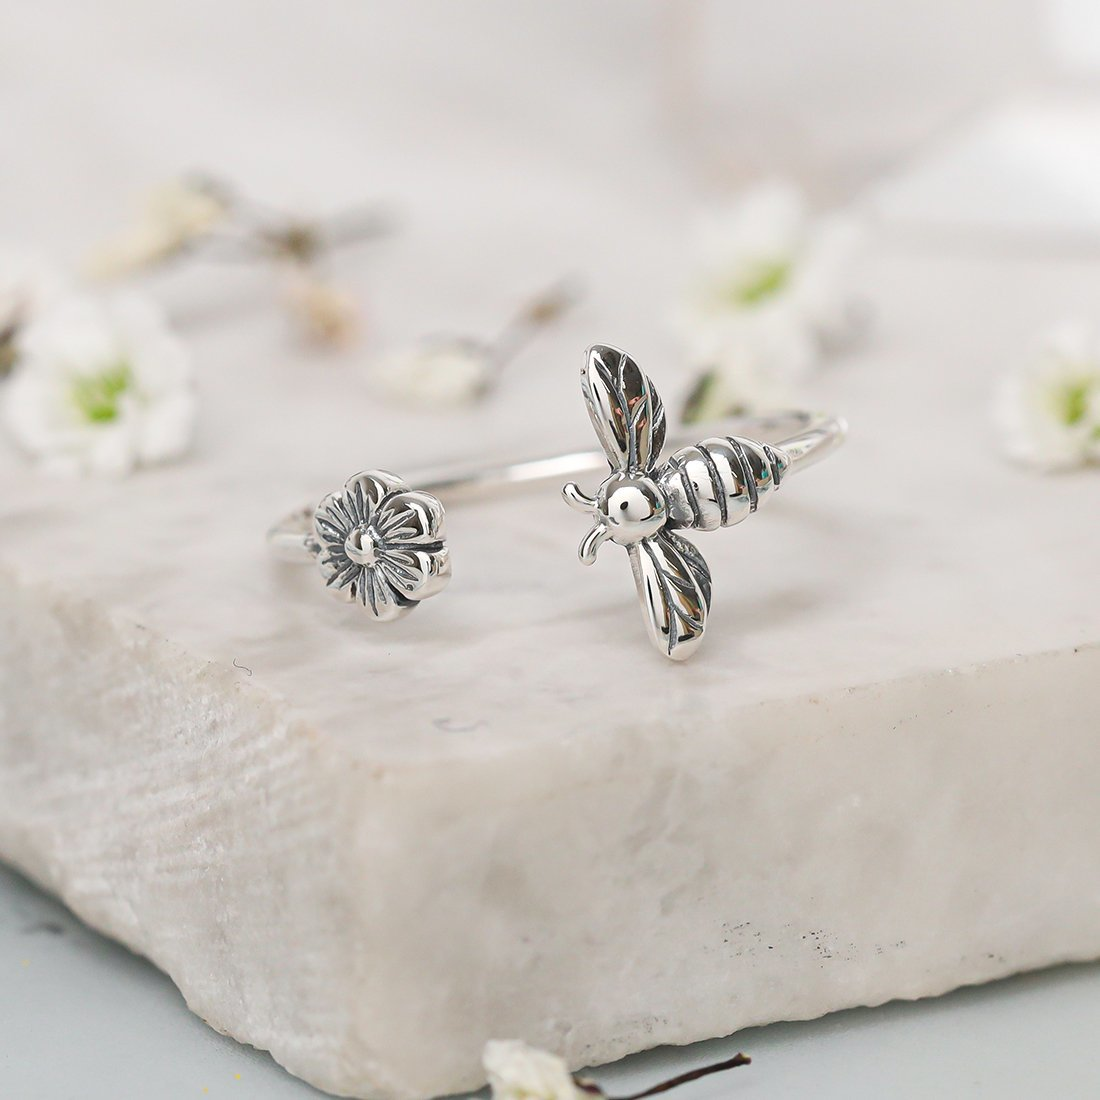 Midsummer Star: Meant to Bee Ring (Size 5) image